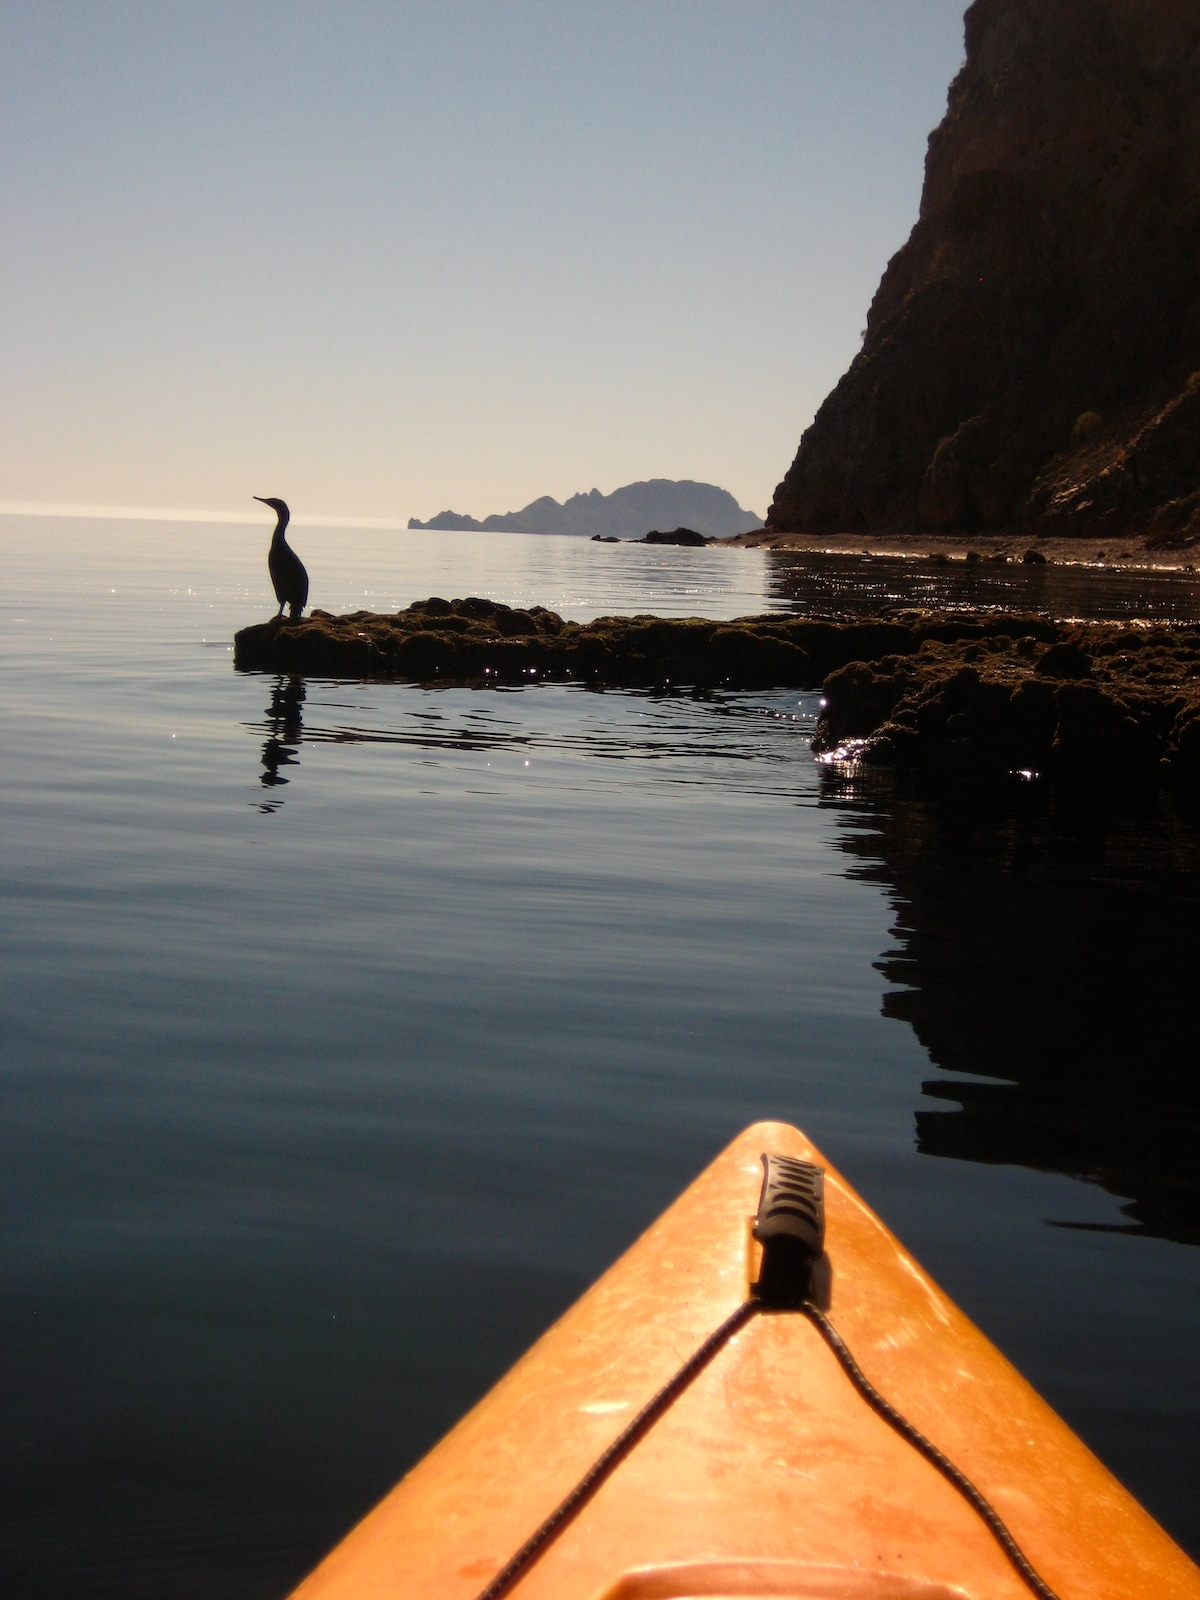 Kayaking along our shore to Nopolo Rock, 5 minutes away!